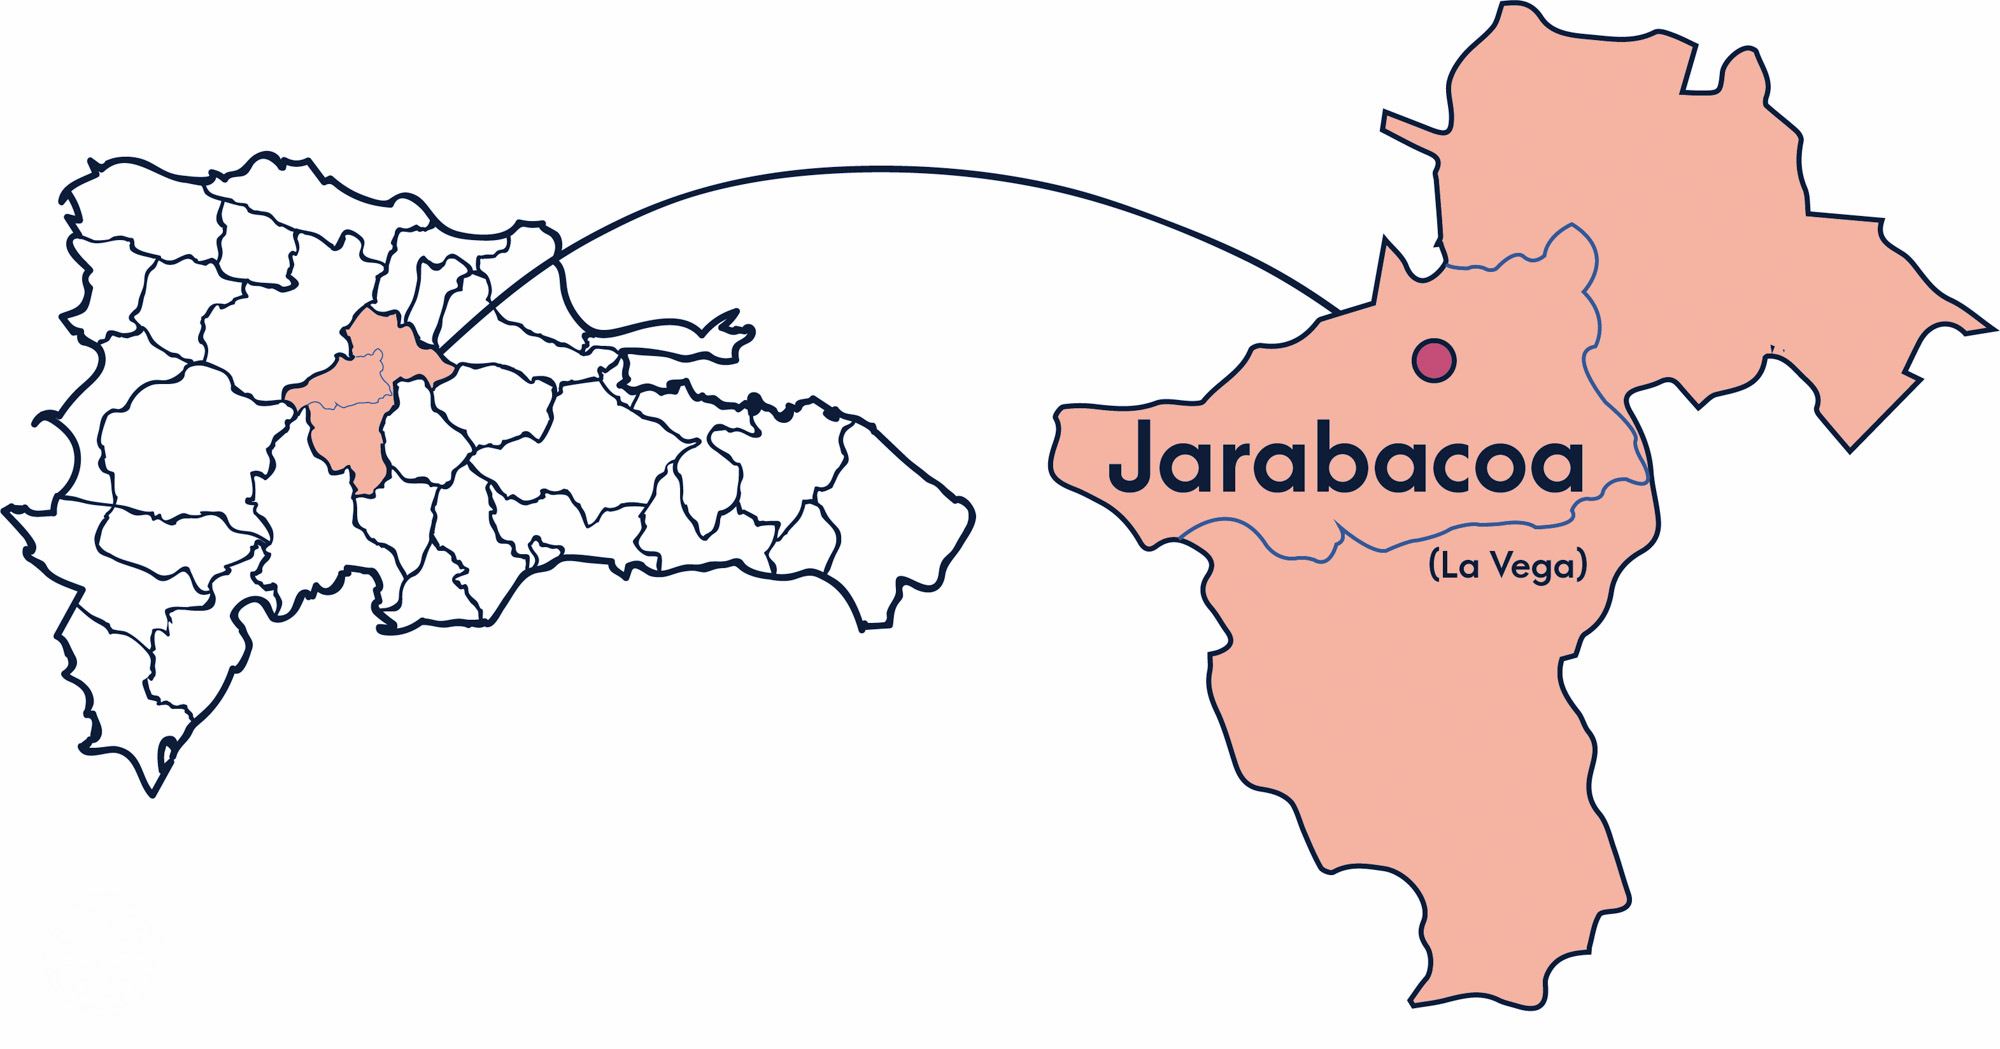 A Map of the Dominican Republic showing whee the Jarabacoa region is in orange.